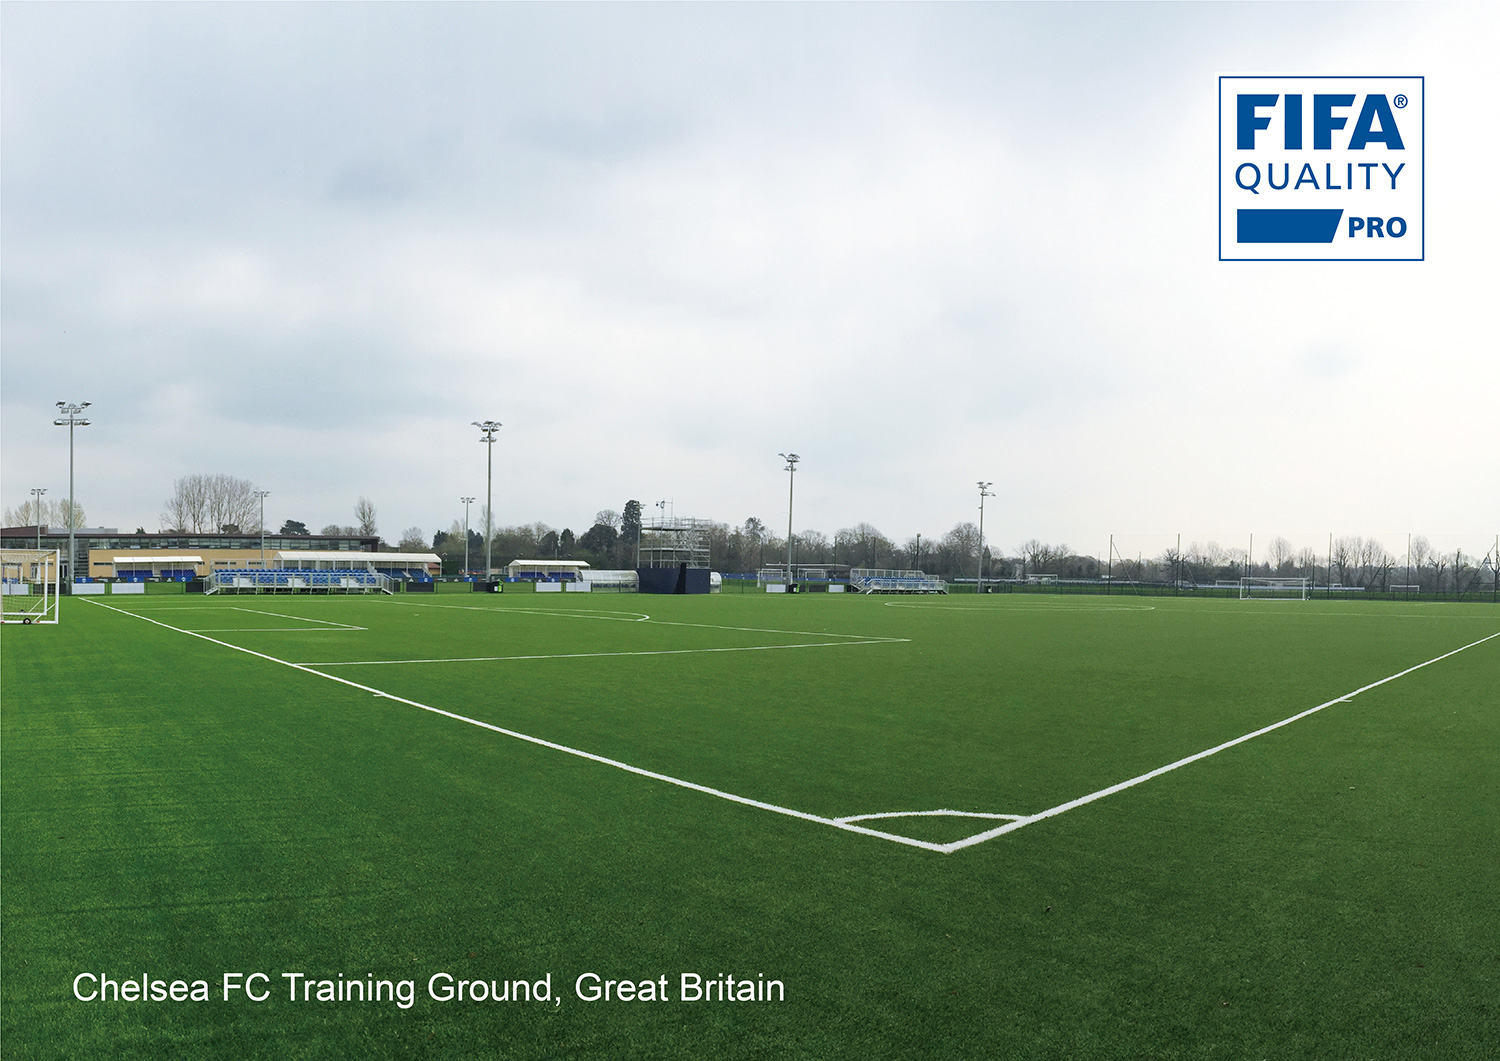 CCGrass artificial grass manucturer FIFA pro field Chelsea FC Training Ground, Great Britain